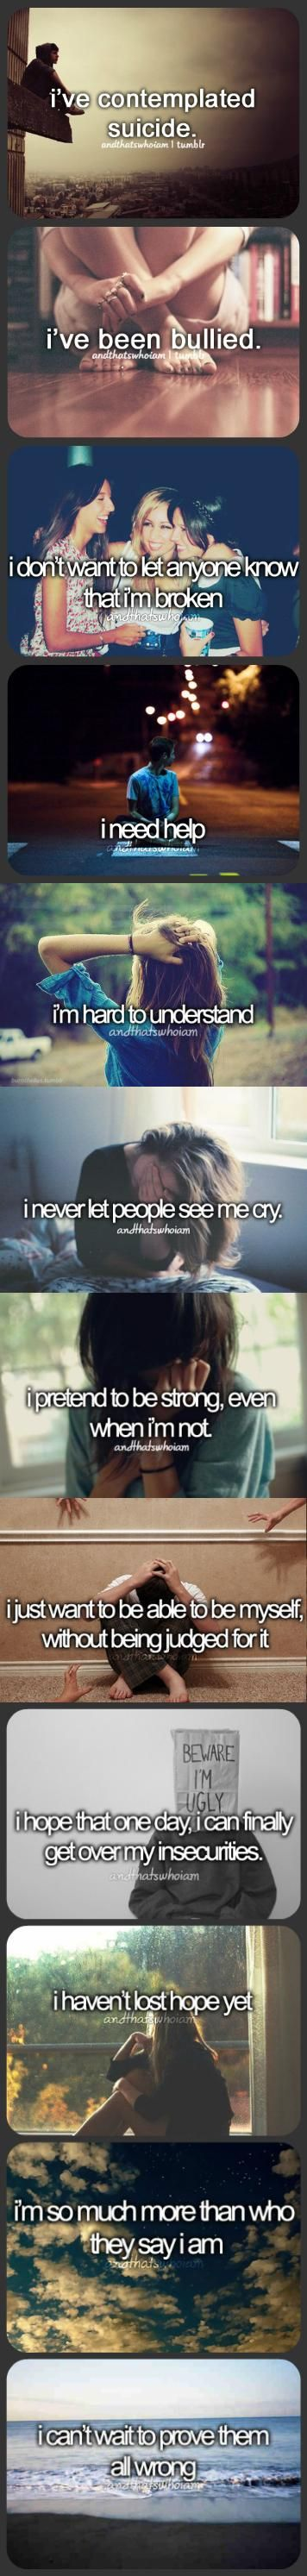 And Thats Who I Am.. Depression. Hurt. Anorexia. Bullied. Brocken. Death. Cutter. Self-Harm. Depressed. Suicidal. Sad. Bulimia. Paranoia. Anxiety. Panic. Eating Disorder. Voices. Lost. Self Hate. Misunderstood. Alone. Drugs. Hard. Judged. Alcohol. Cigarette. Panic. Recovery. Alive. Help. Strong. Cry. Life. Addiction. Pills. Bad. Hope.